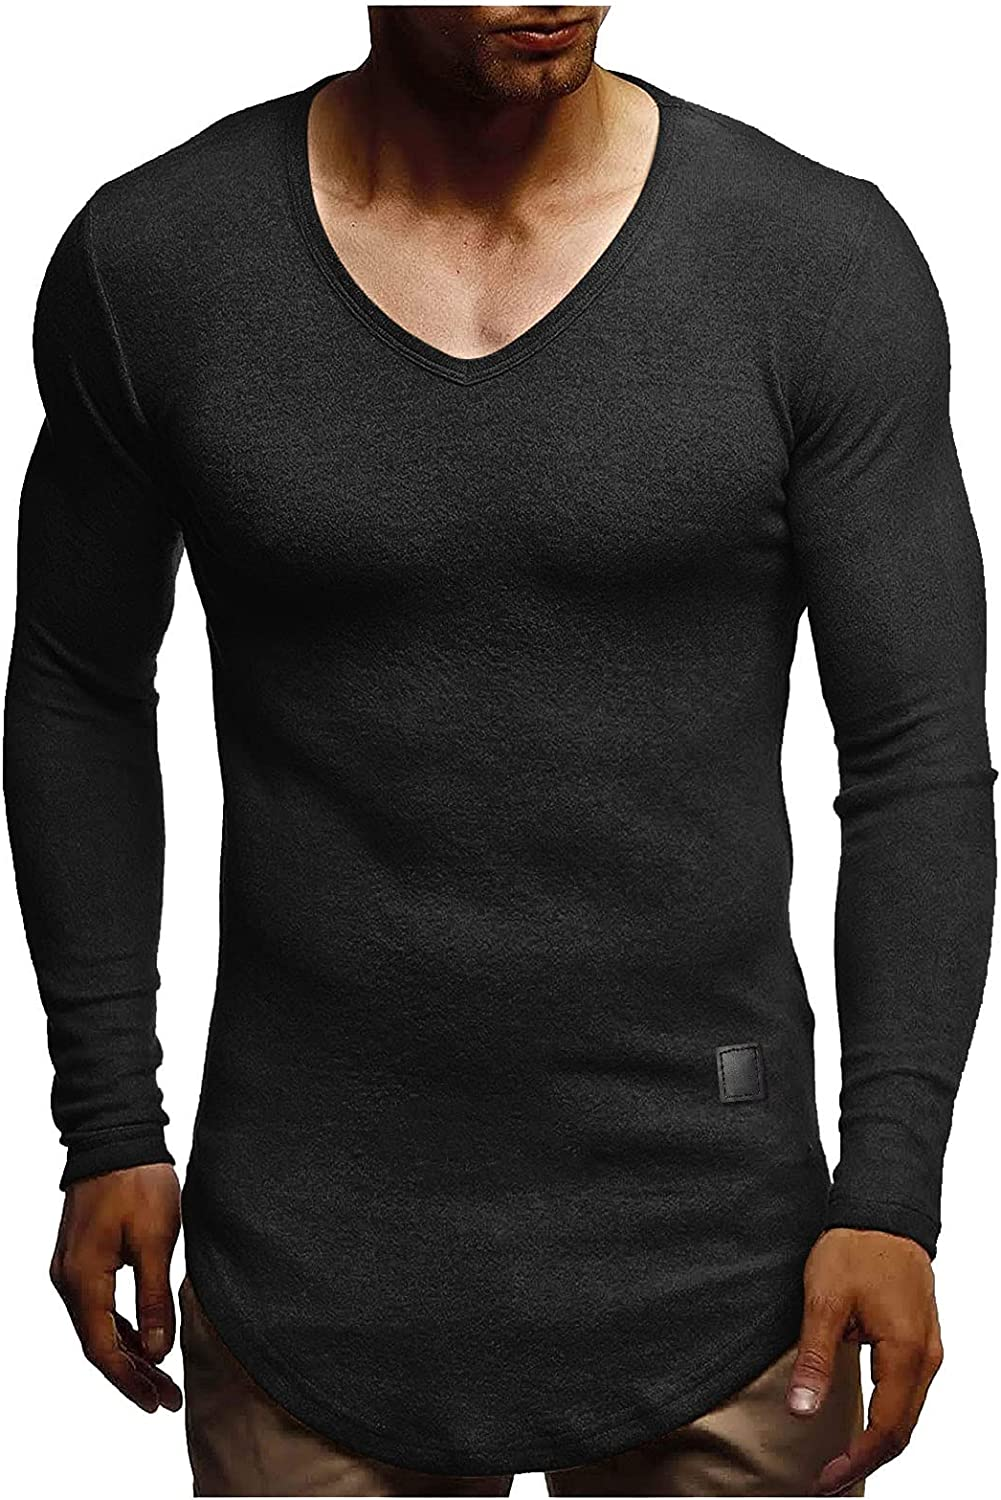 Long Sleeve Polo Shirts for Men Quick Dry, Solid Color Warm Treasure Cotton And Cashmere V-Neck Long-Sleeved Tops Shirt